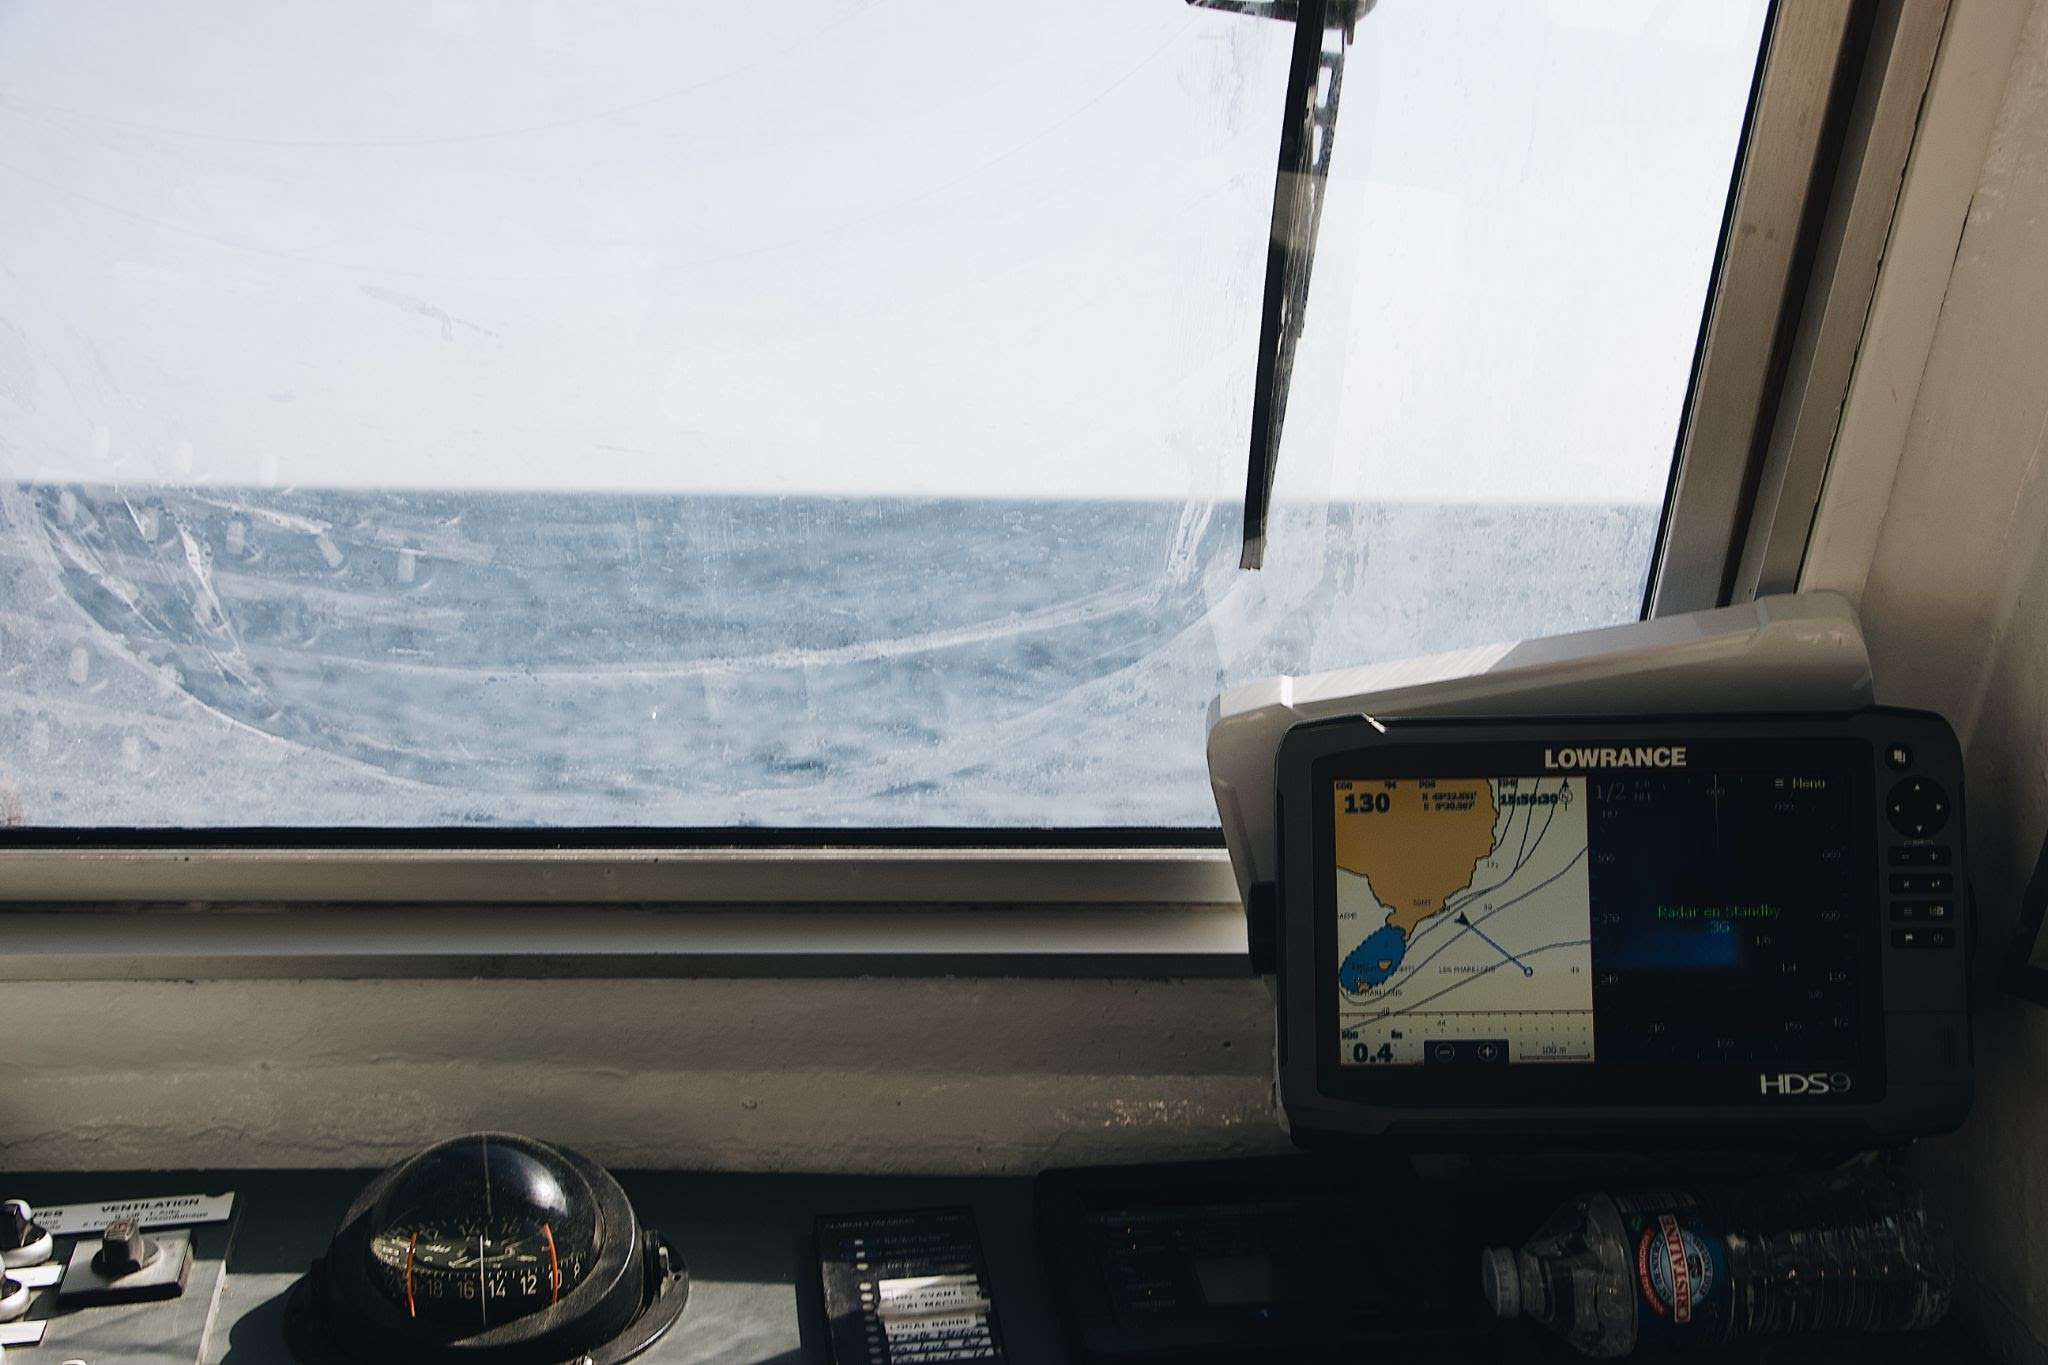 compass and chart course to steer